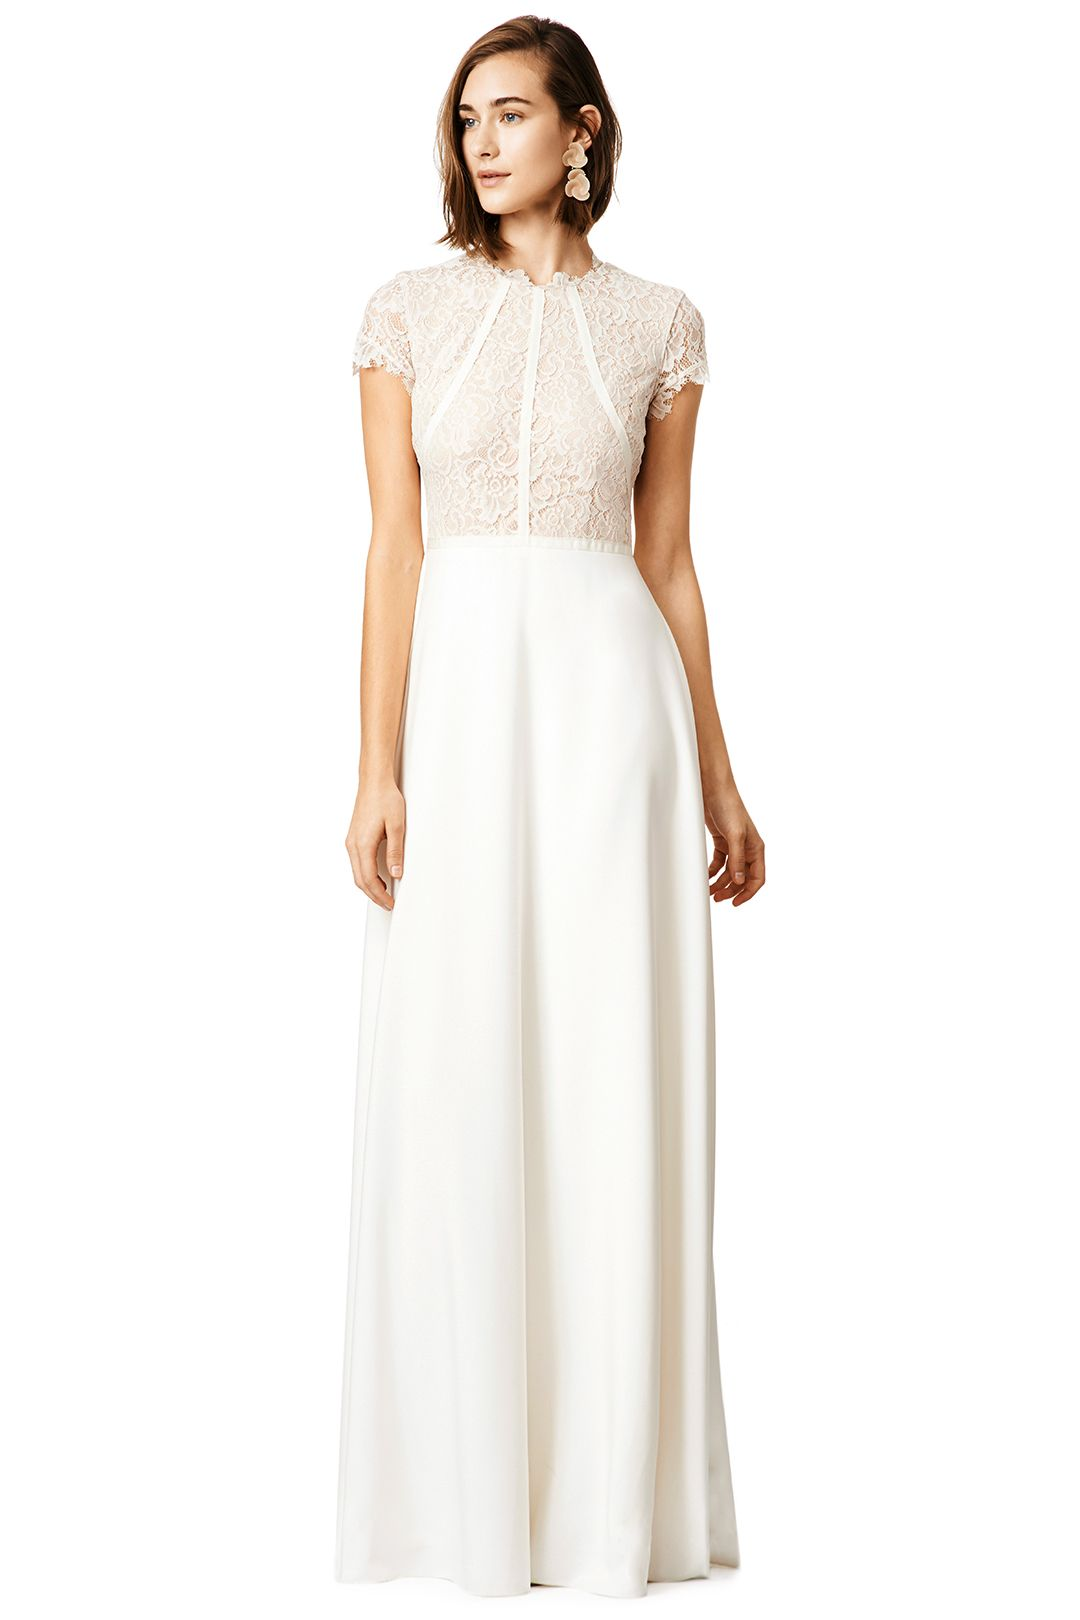 Amber Gown by nha khanh for $150 | Rent The Runway - is it wrong to ...